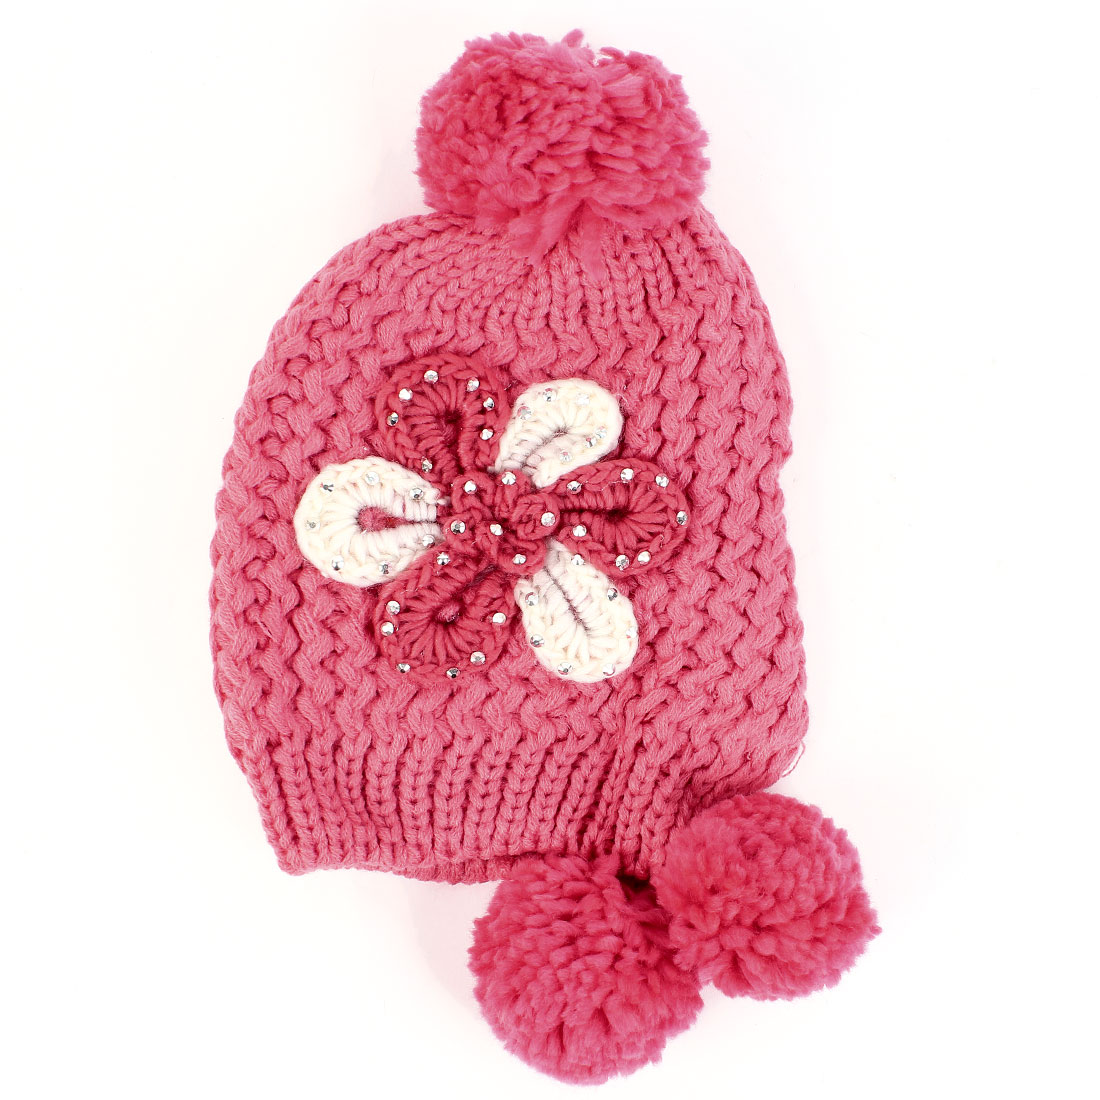 Woman Chic 3 Pom-Pom Design Red Thick Winter Knitted Cap Hat